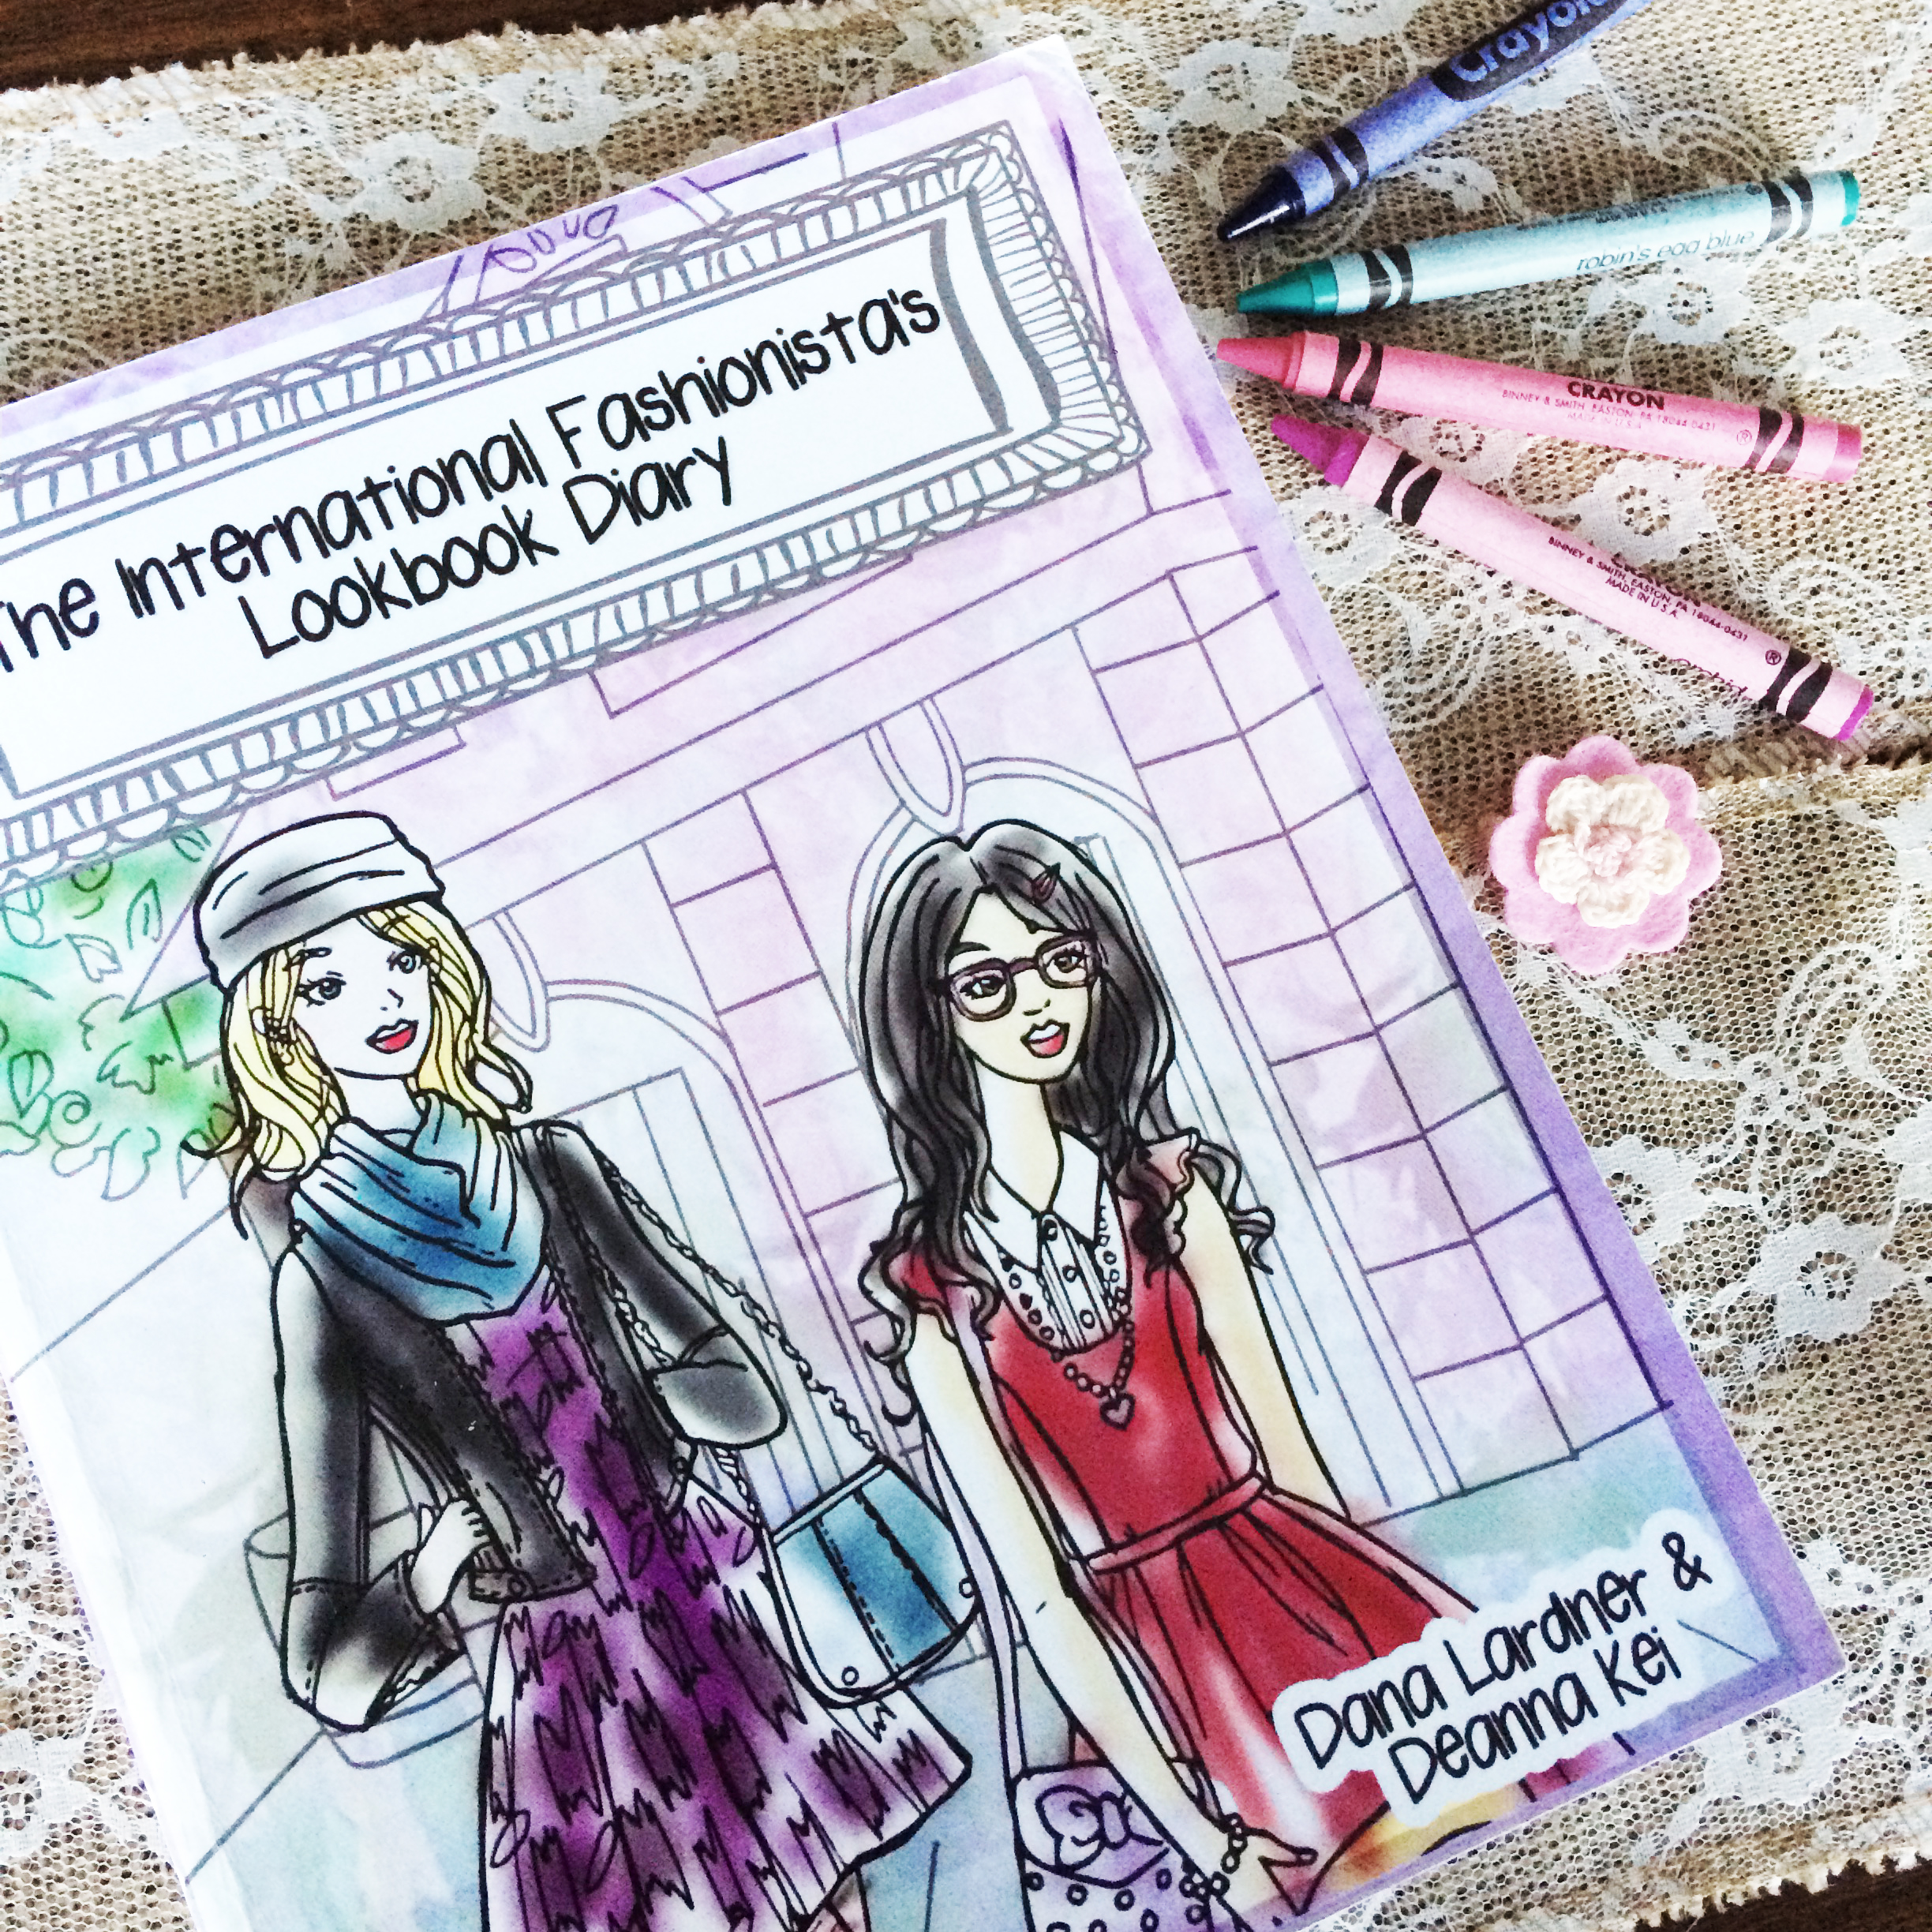 The International Fashionista's Lookbook Diary